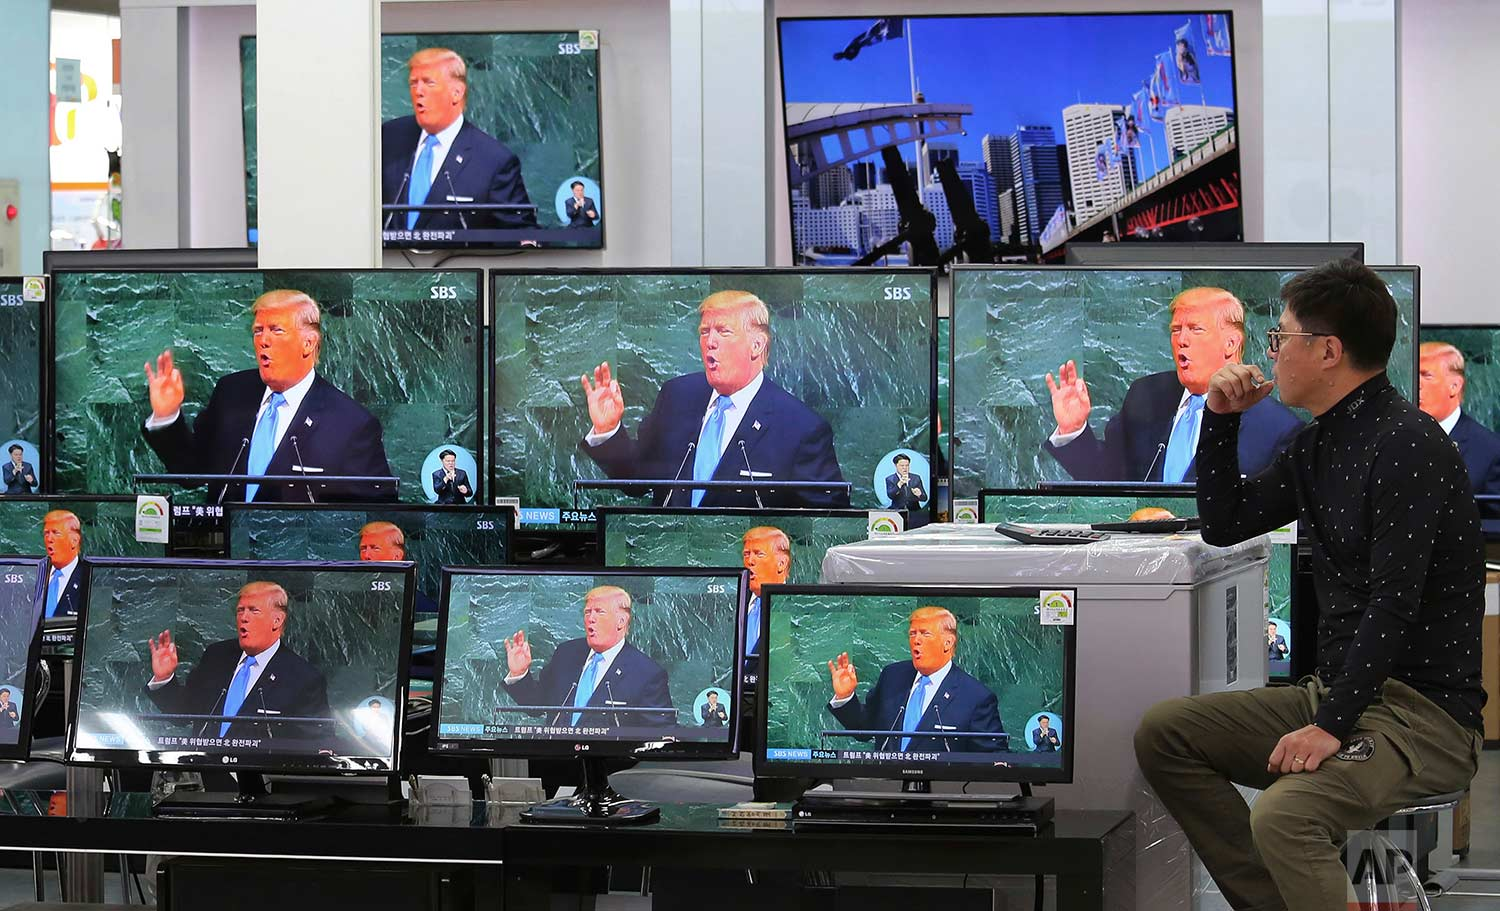 "Television screens show a news program with an image of U.S. President Donald Trump during his address at the U.N. General Assembly, at the Yongsan Electronic Market in Seoul, South Korea, Wednesday, Sept. 20, 2017. On Friday, Sept. 22, 2017. North Korean leader Kim Jong Un lobbed a string of insults at Trump, calling him a ""mentally deranged U.S. dotard"" and hinting at a frightening new weapon test. (AP Photo/Ahn Young-joon)"